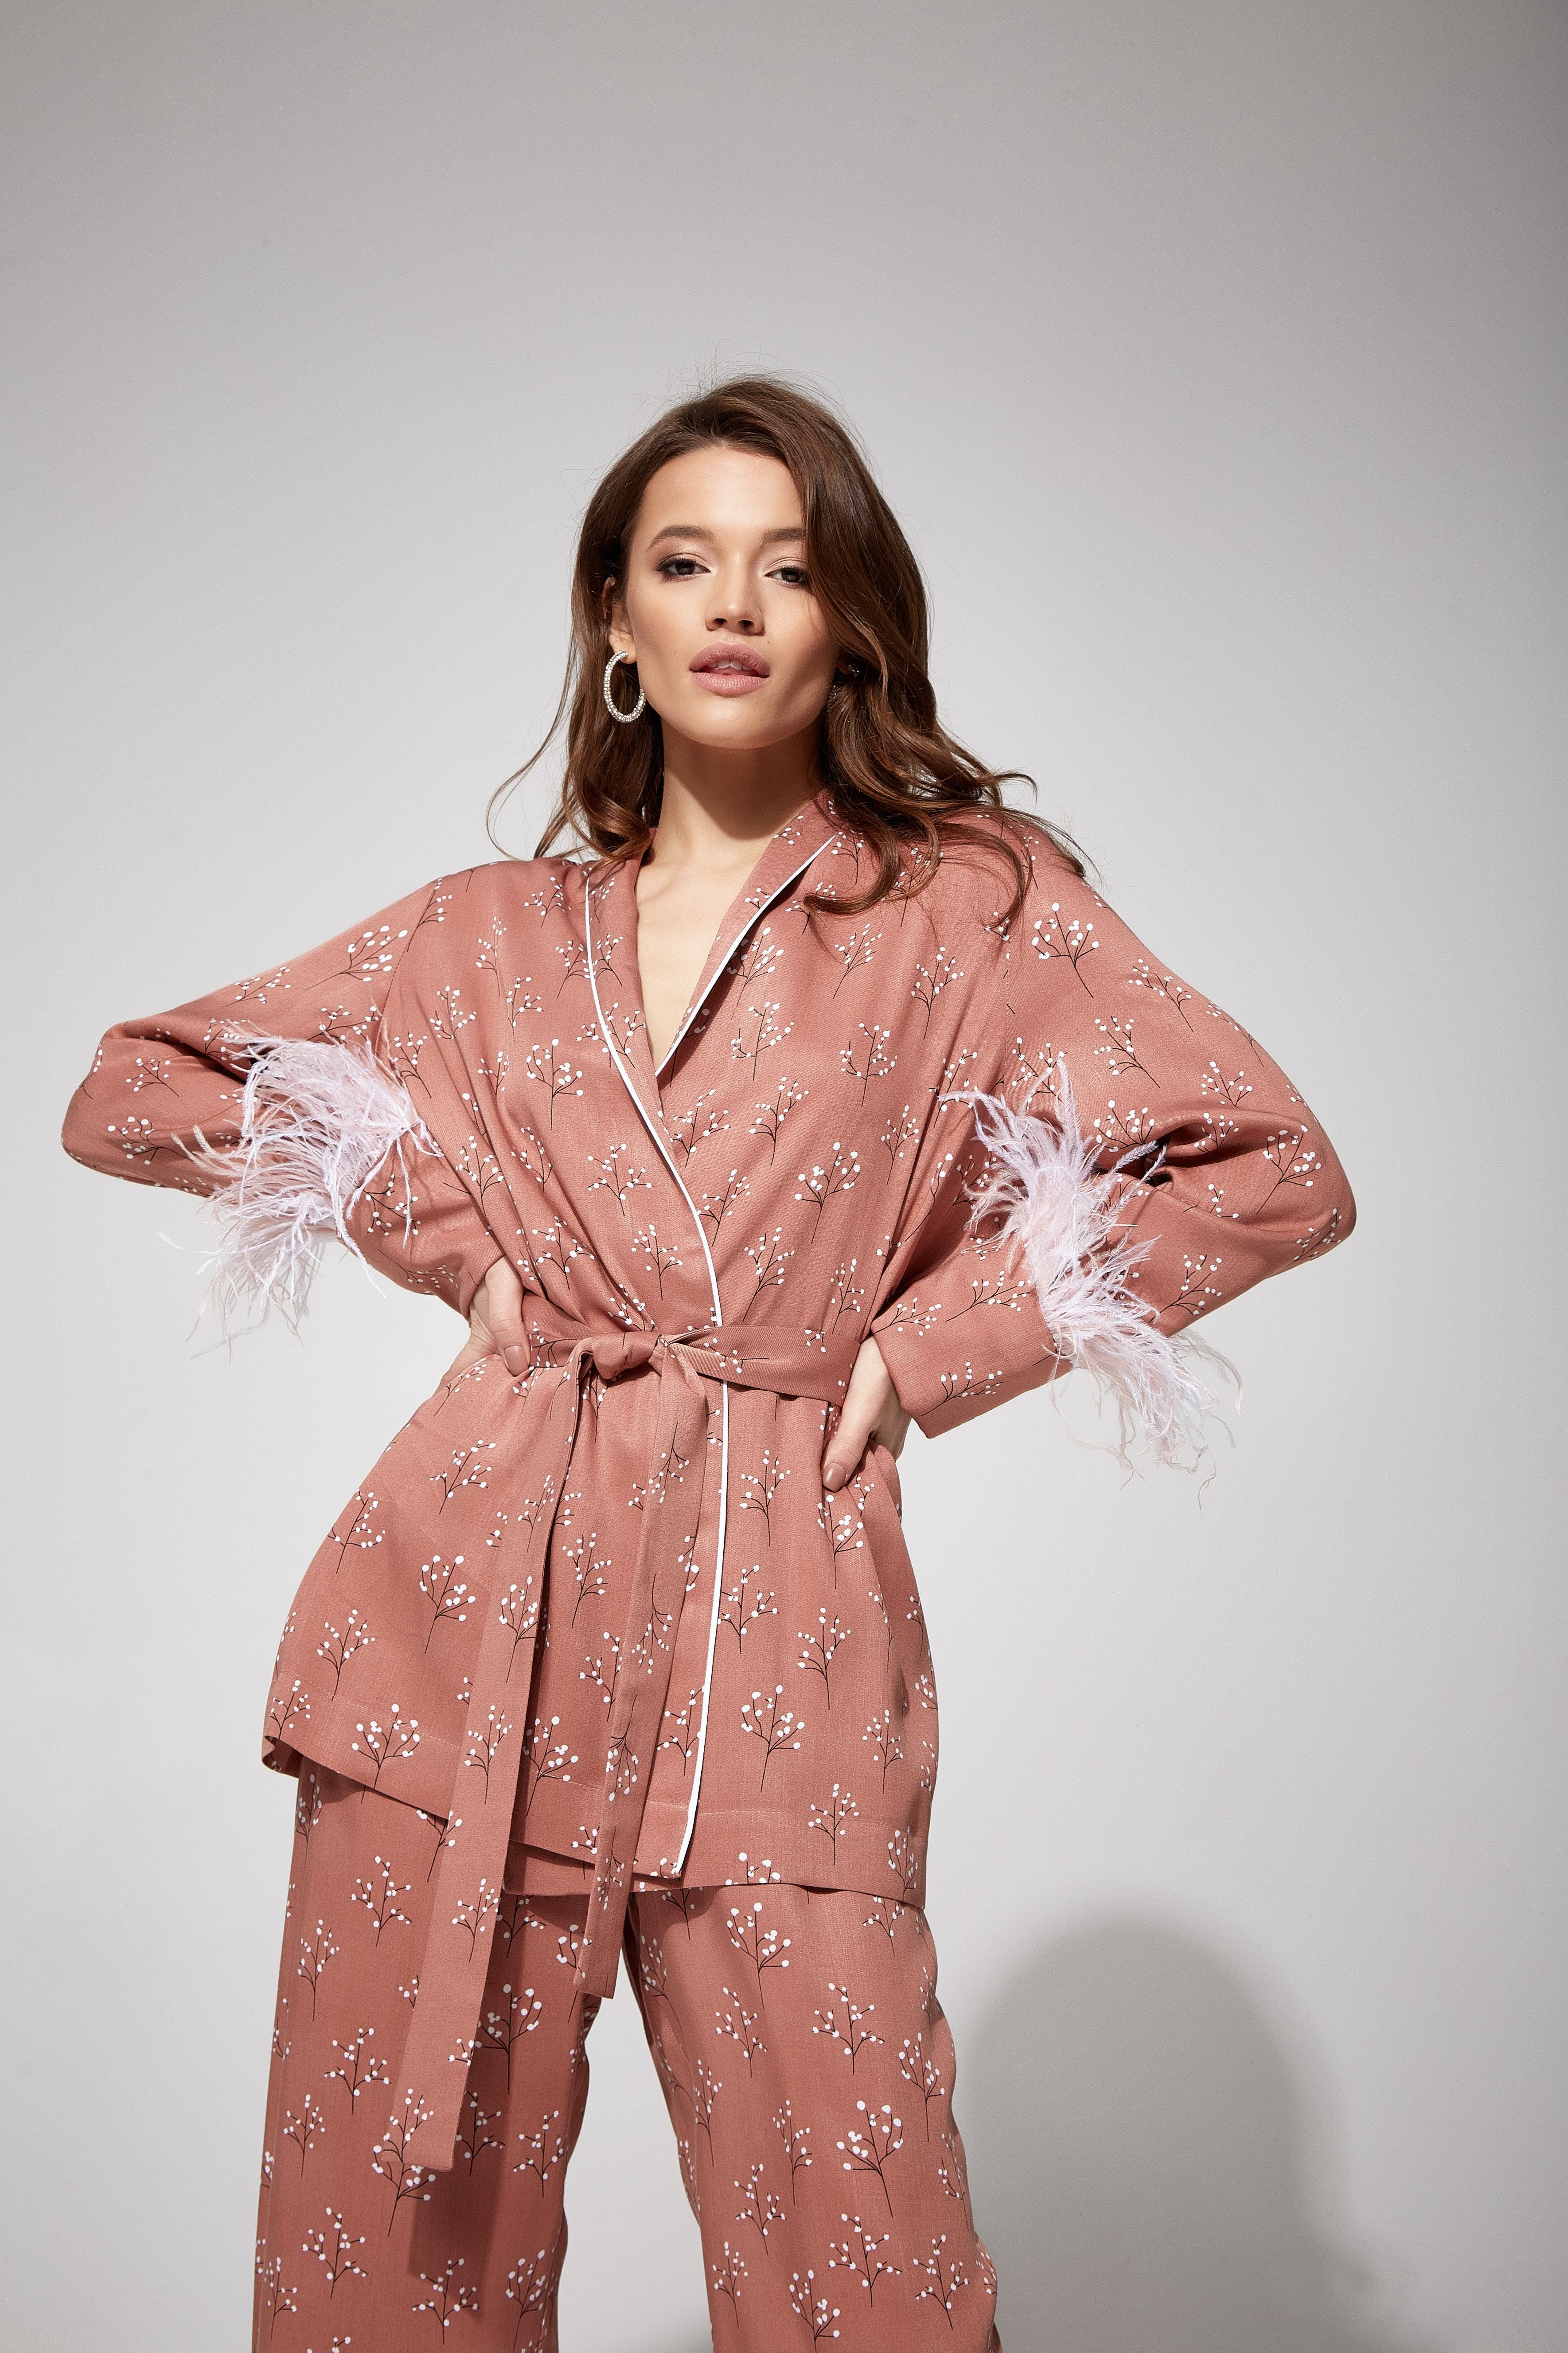 17 of the Best Pajamas to Shop on Amazon for the Most Peaceful Yet Chic Sleep